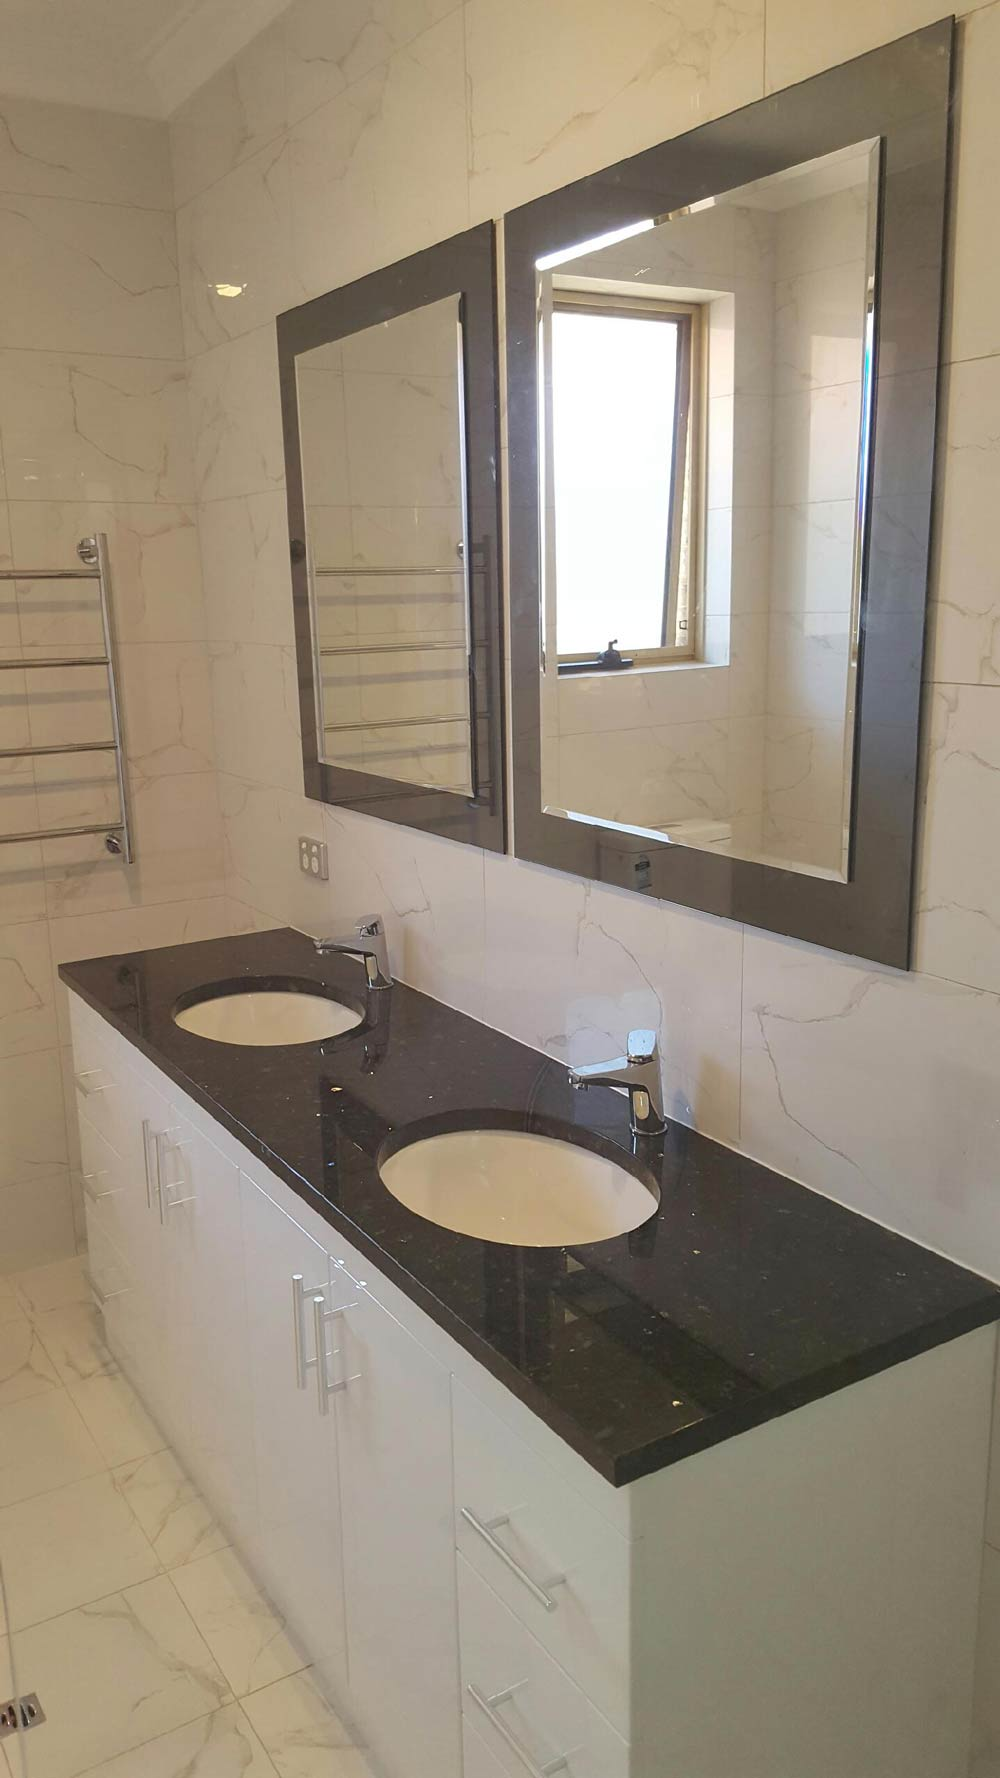 sink with two mirrors above